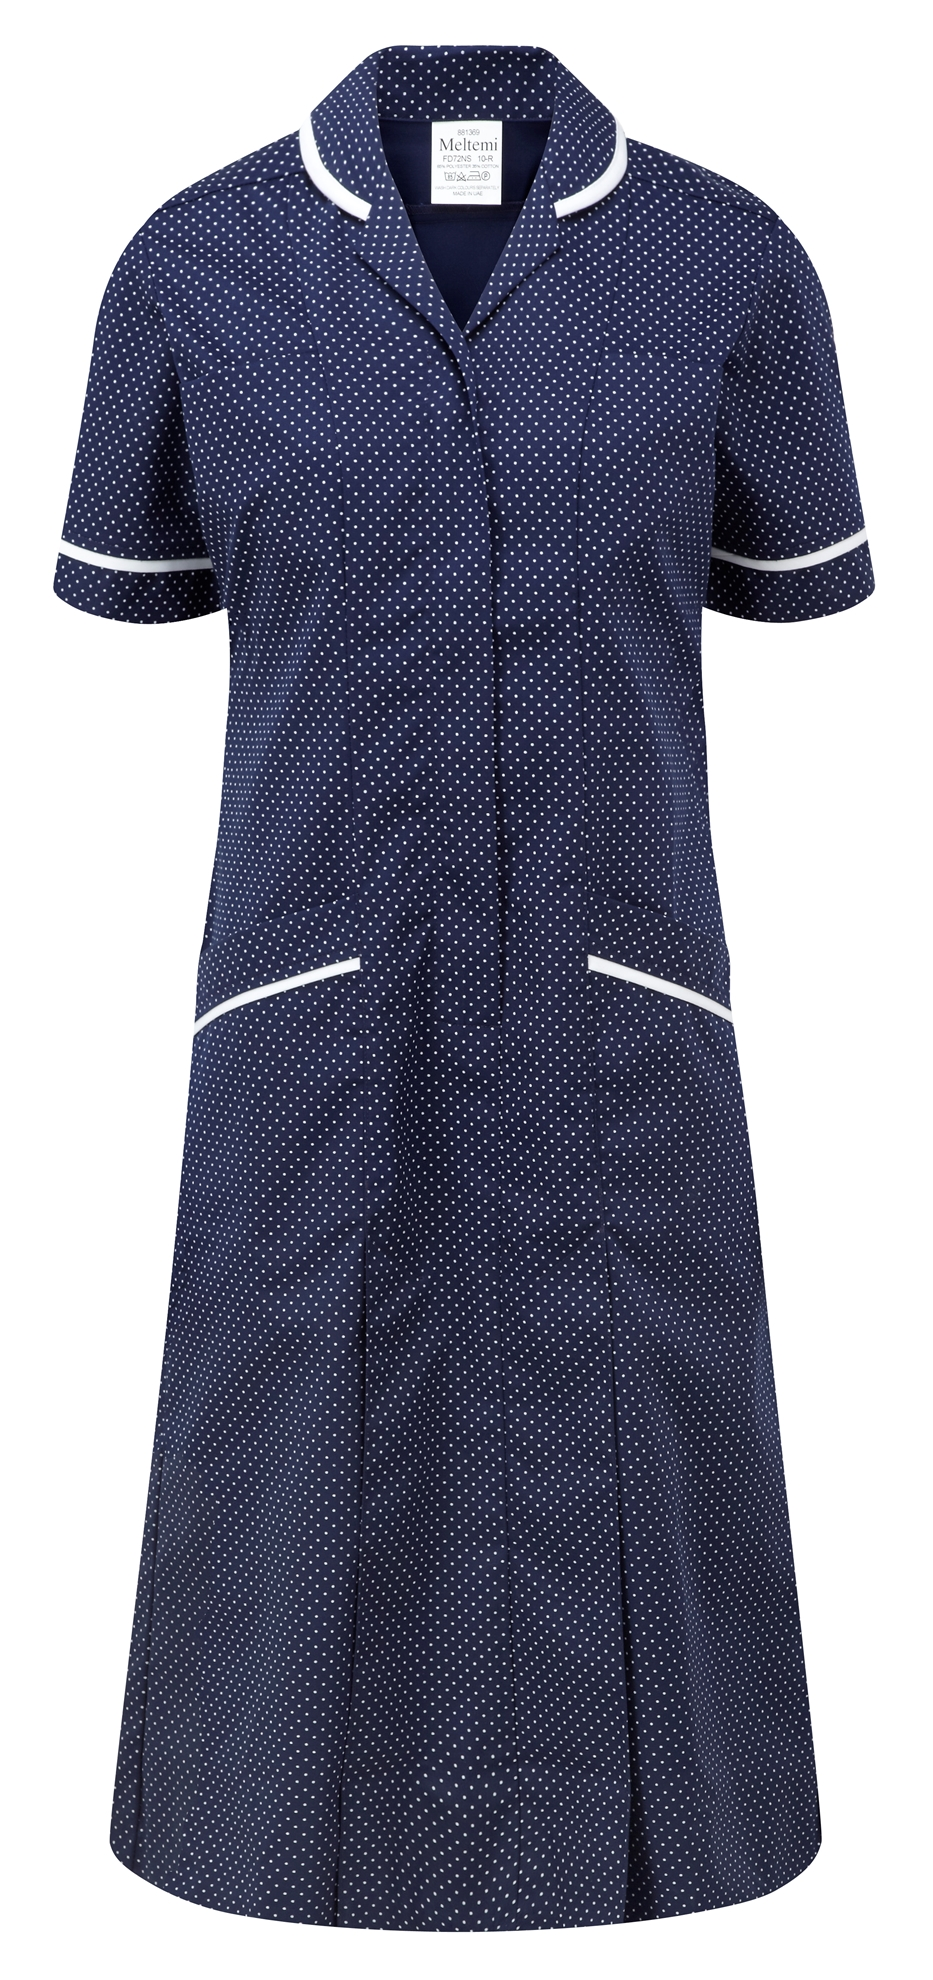 Picture of Professional Specialist Dress - Navy-White Spot/White